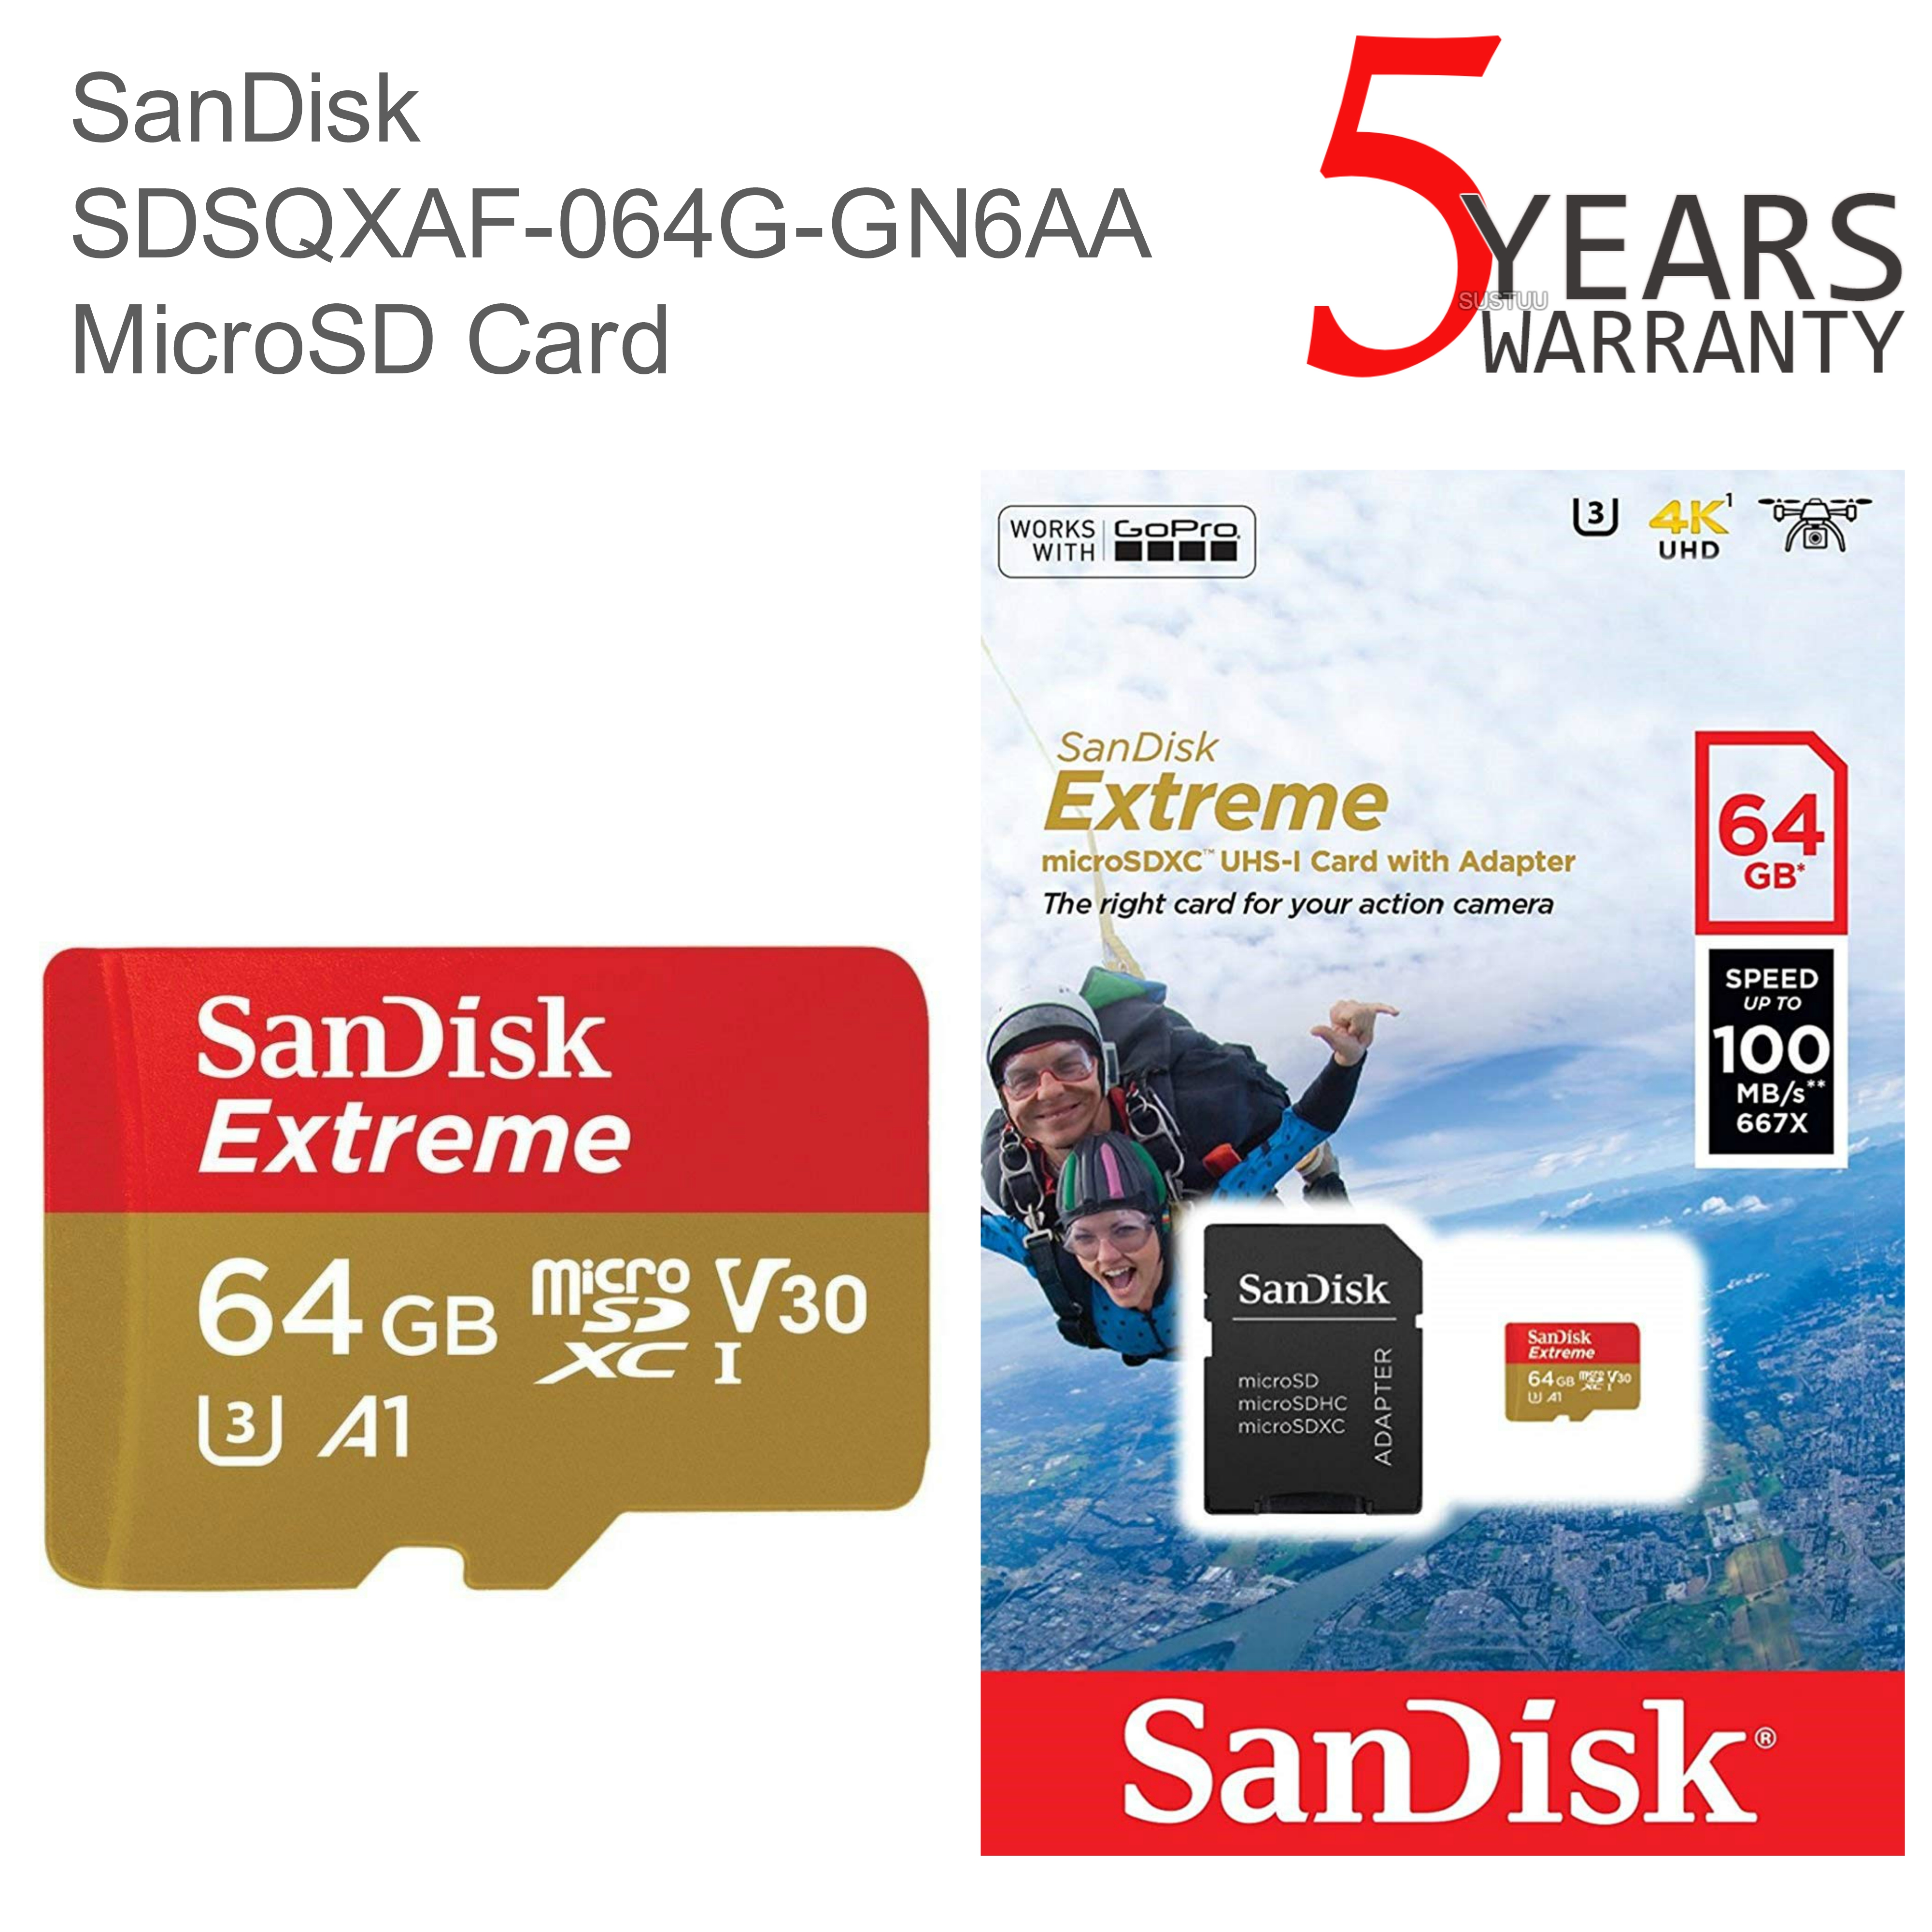 SanDisk 64GB Extreme Micro SDHC Memory Card & Adapter | 100MB/s | For Action Cameras